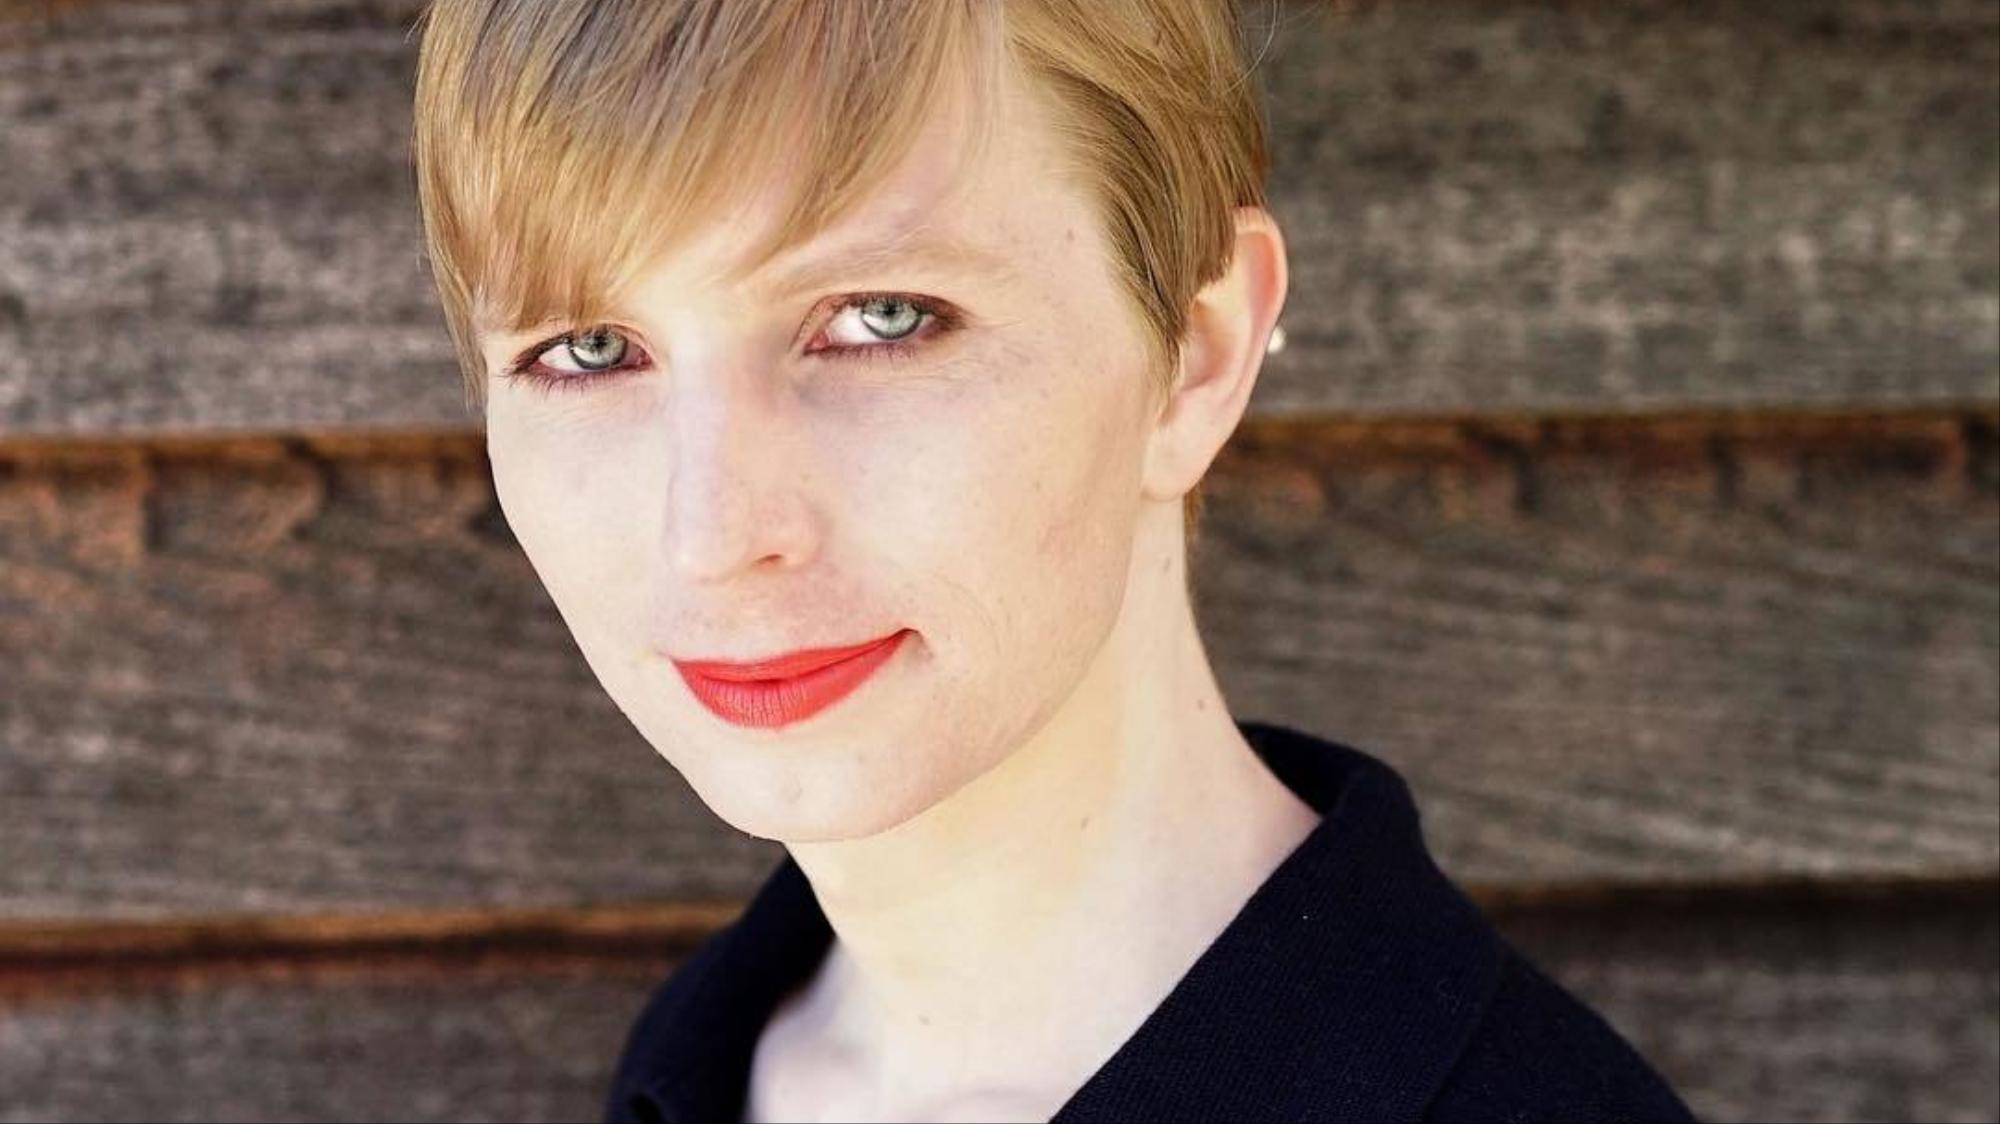 newly free, chelsea manning introduces herself on instagram